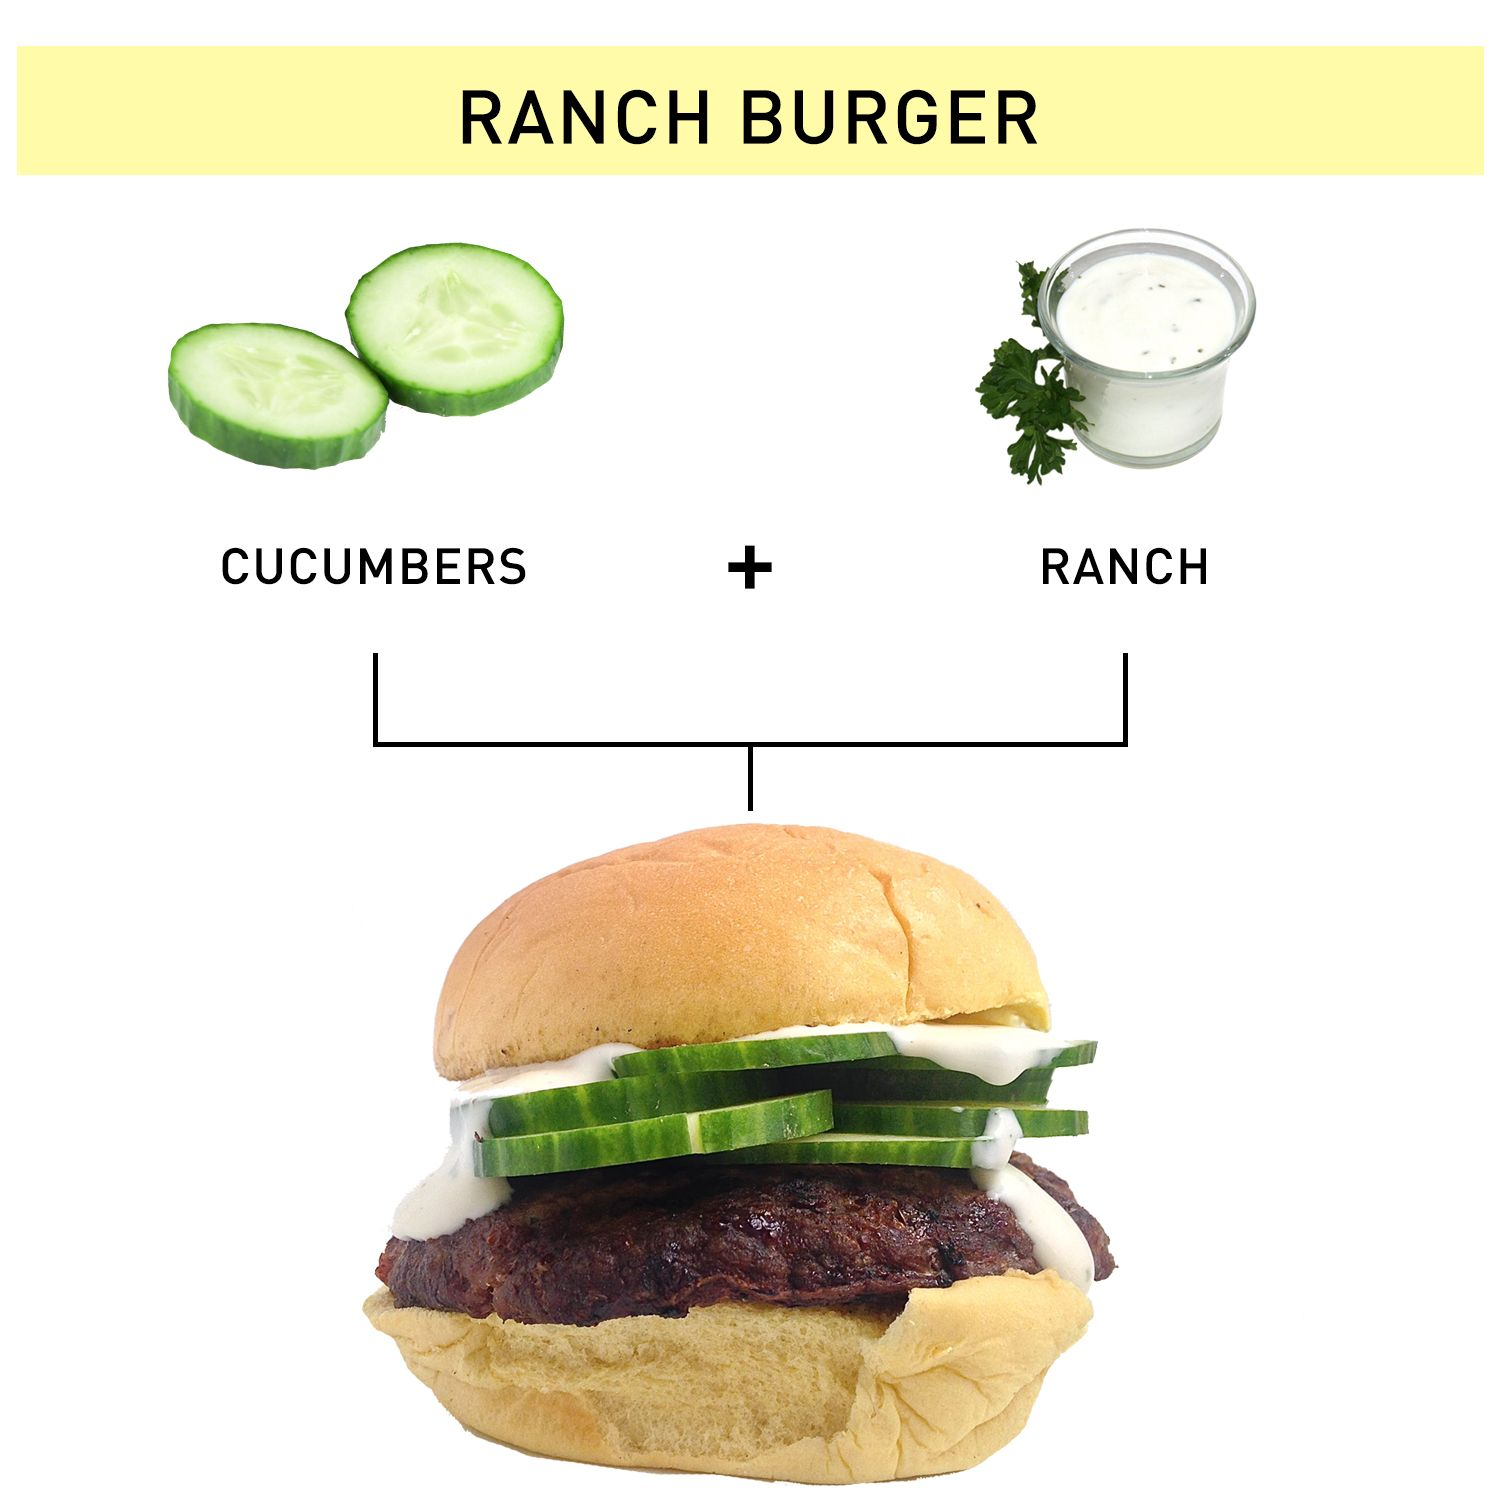 100 Best Burger Toppings Ideas - What to Put on a Burger - Delish.com